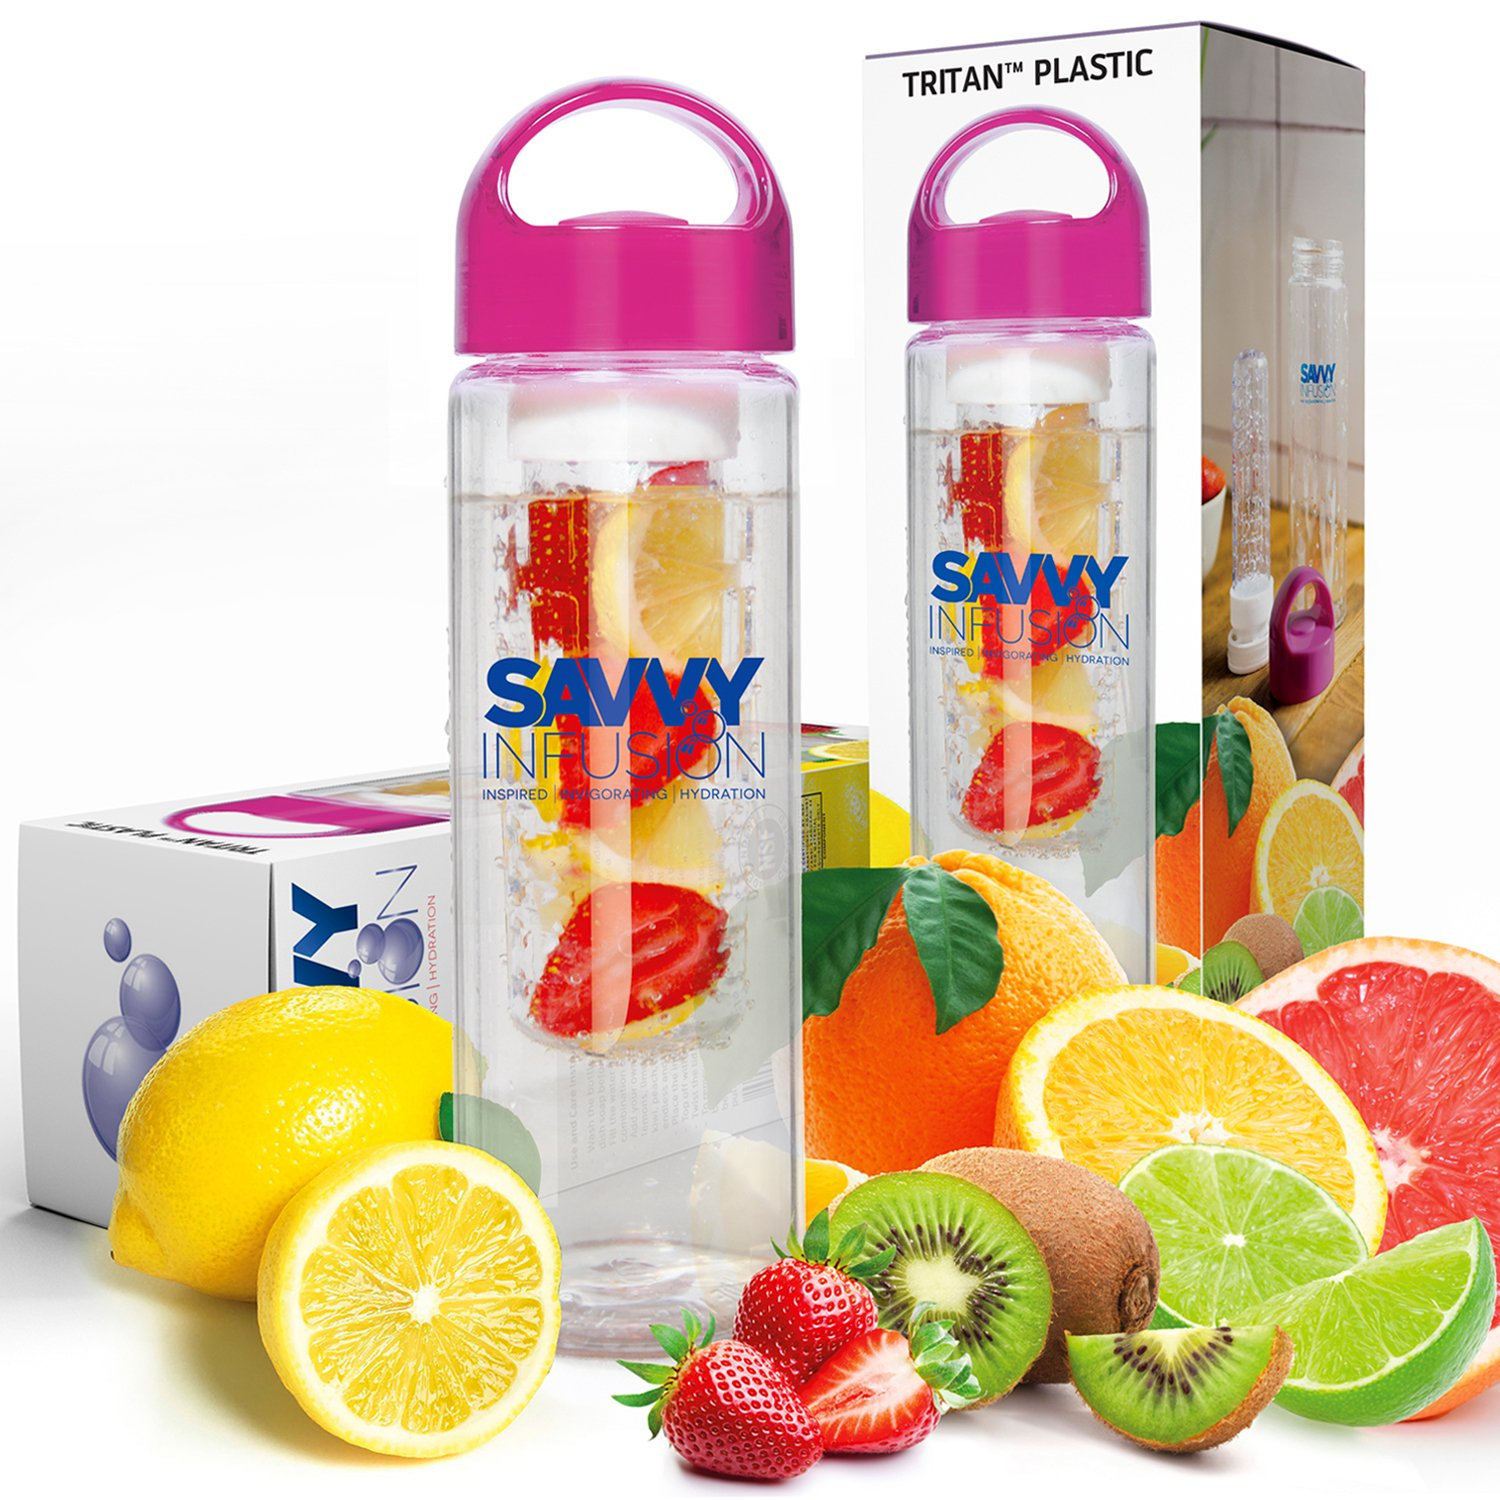 Savvy Infusion Water Bottle - 24 Oz - Create Your Own Naturally Flavored Fruit Infused Water, Juice, Iced Tea, Lemonade & Sparkling Beverages - Choice of Dazzling Infuser Colors